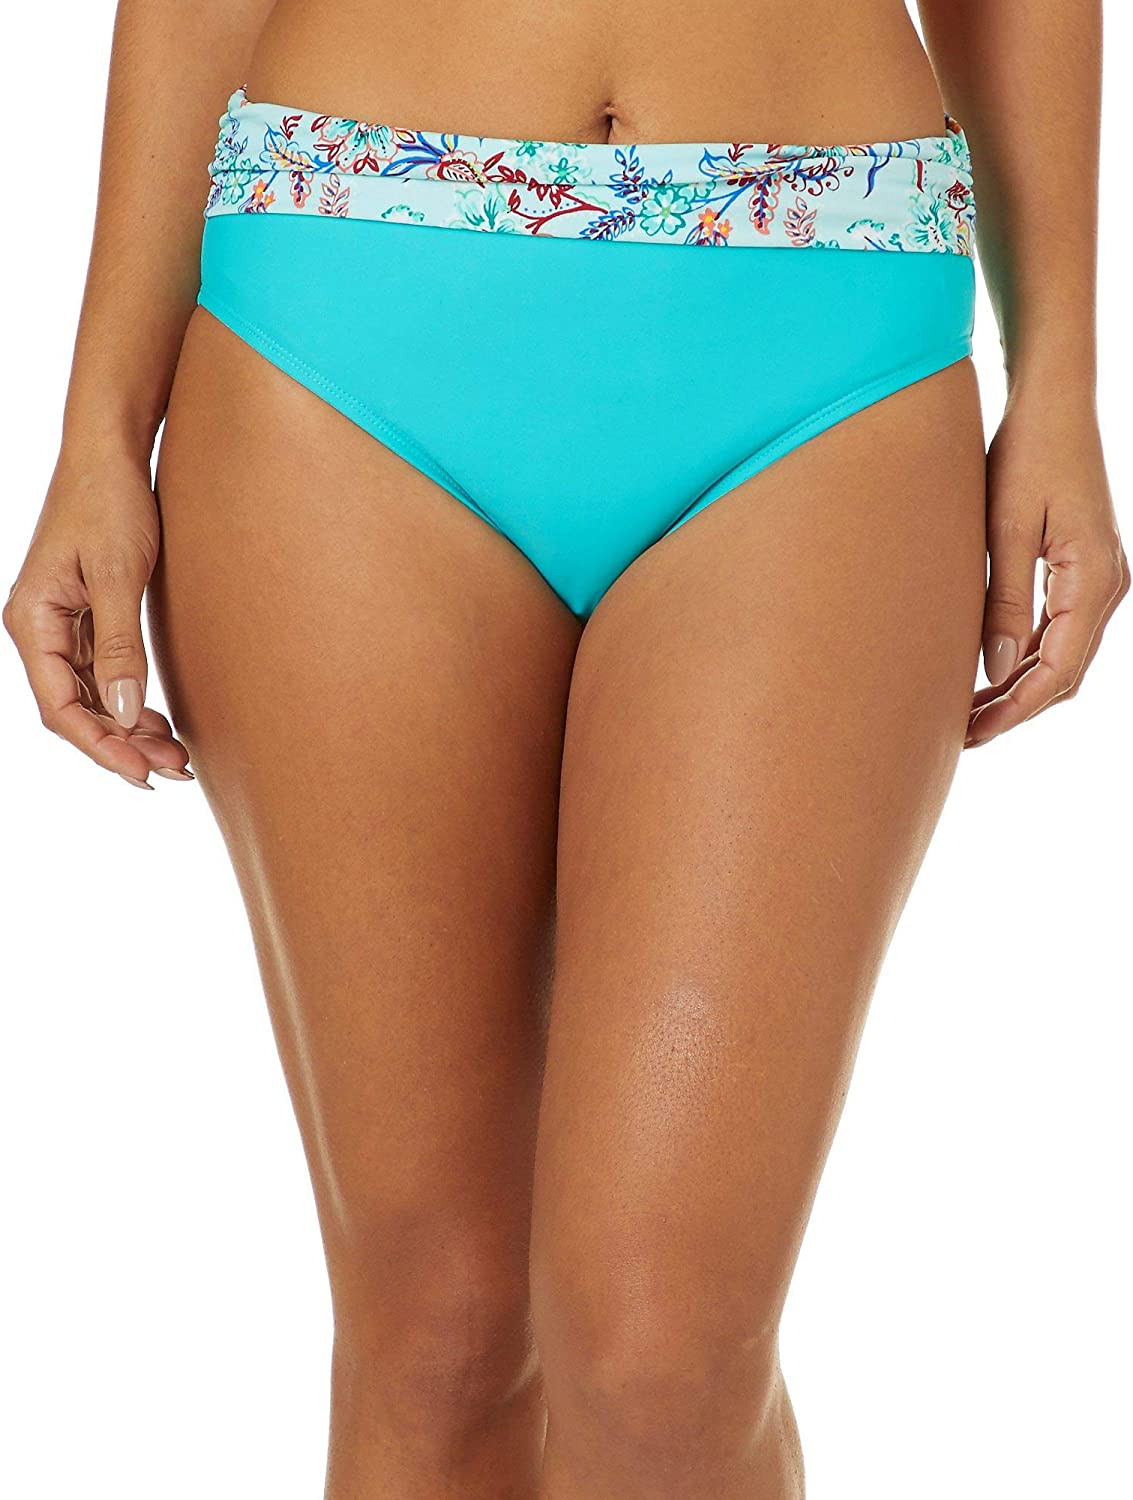 ELLEN TRACY Women's Swimsuit Separates Made in The Shade (Tops & Bottoms)